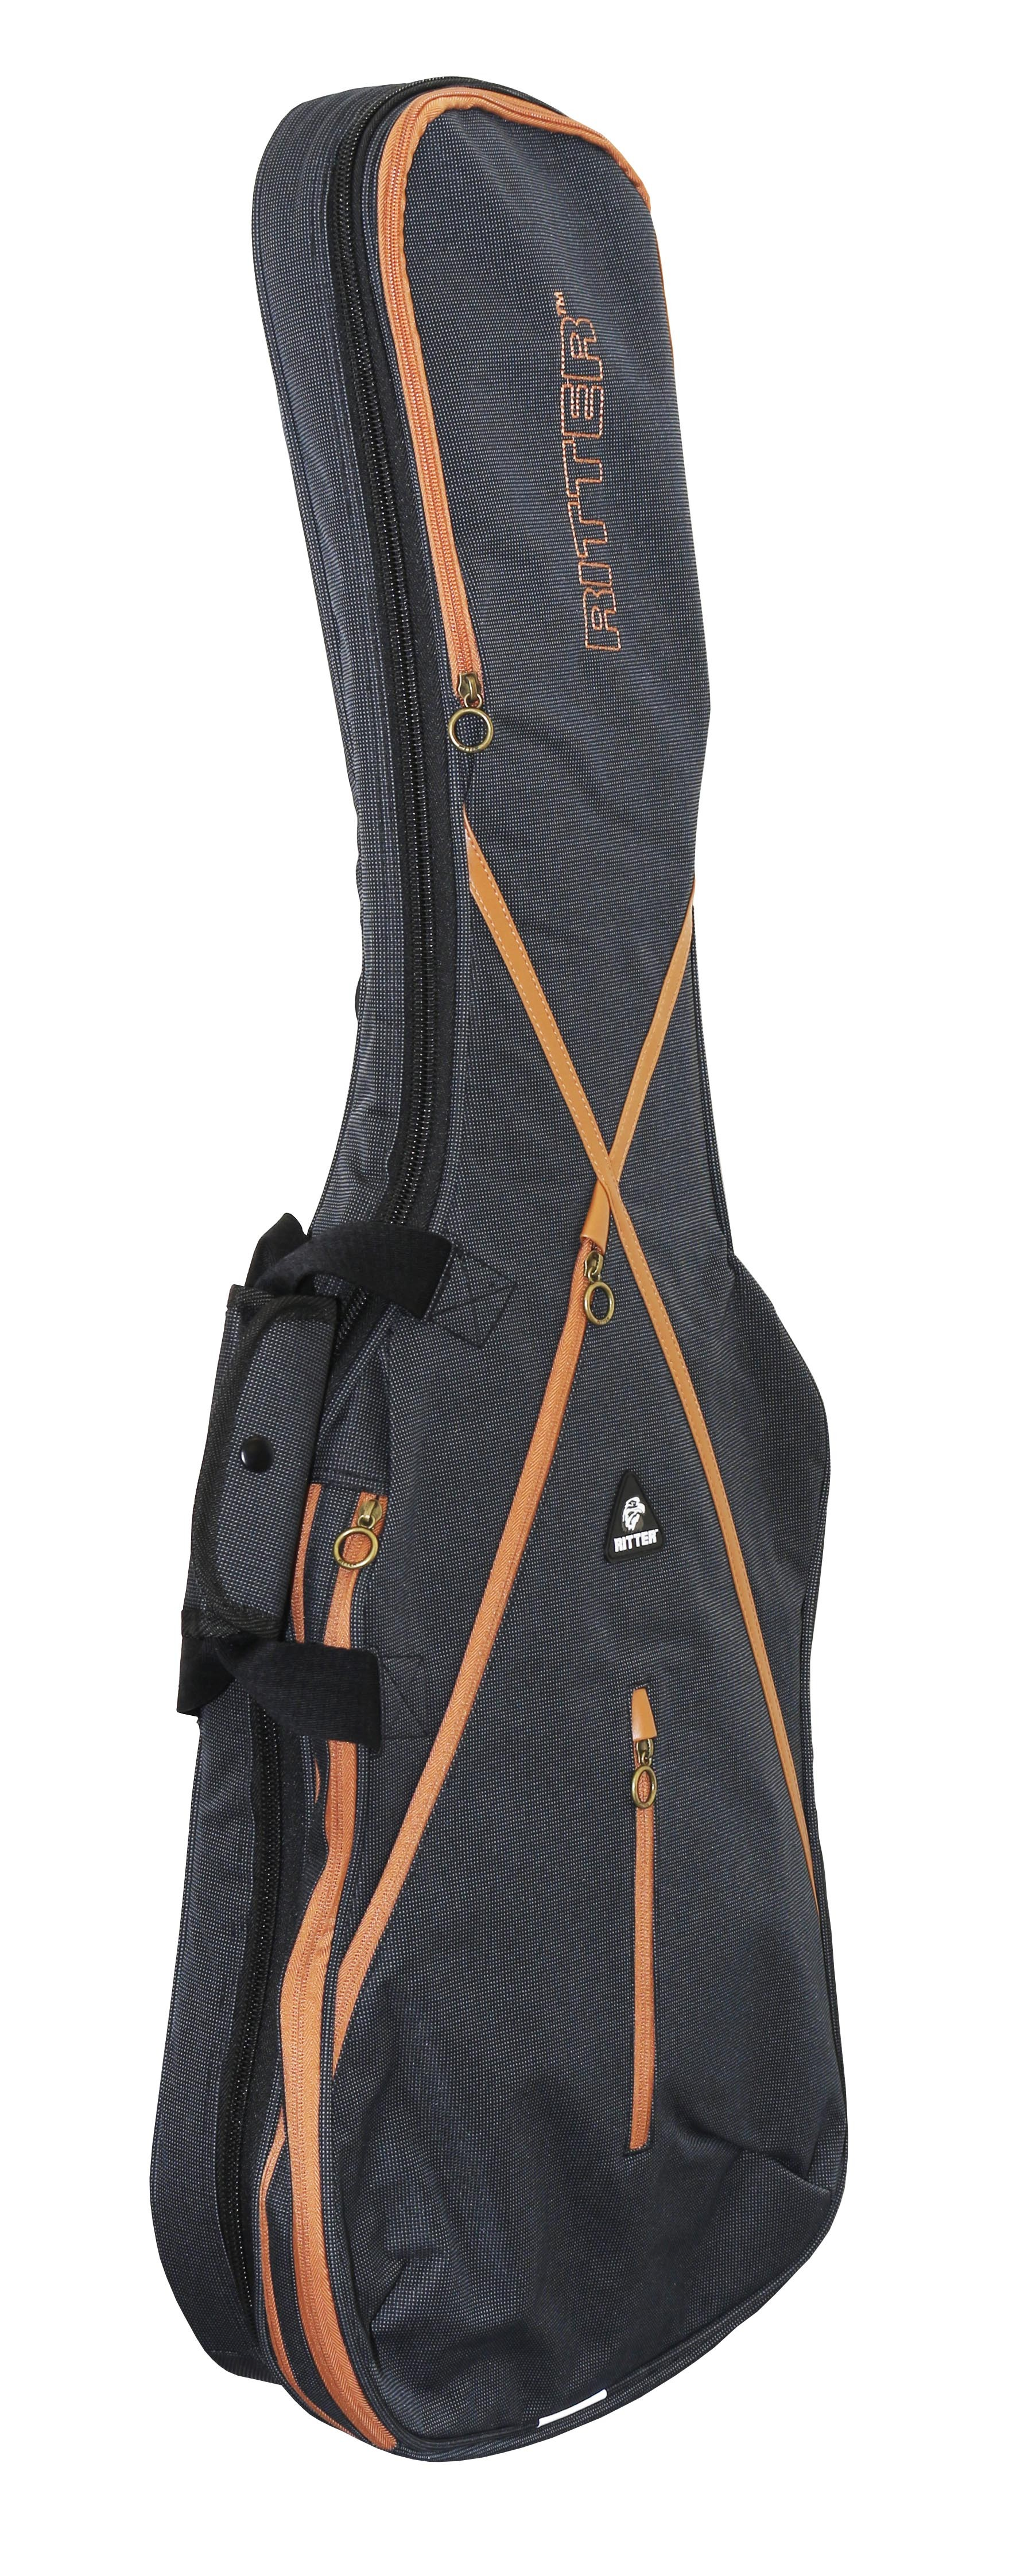 Ritter RGS7-EEP/MGB Electric Guitar Bag with Extra Pocket - Misty Grey/Brown